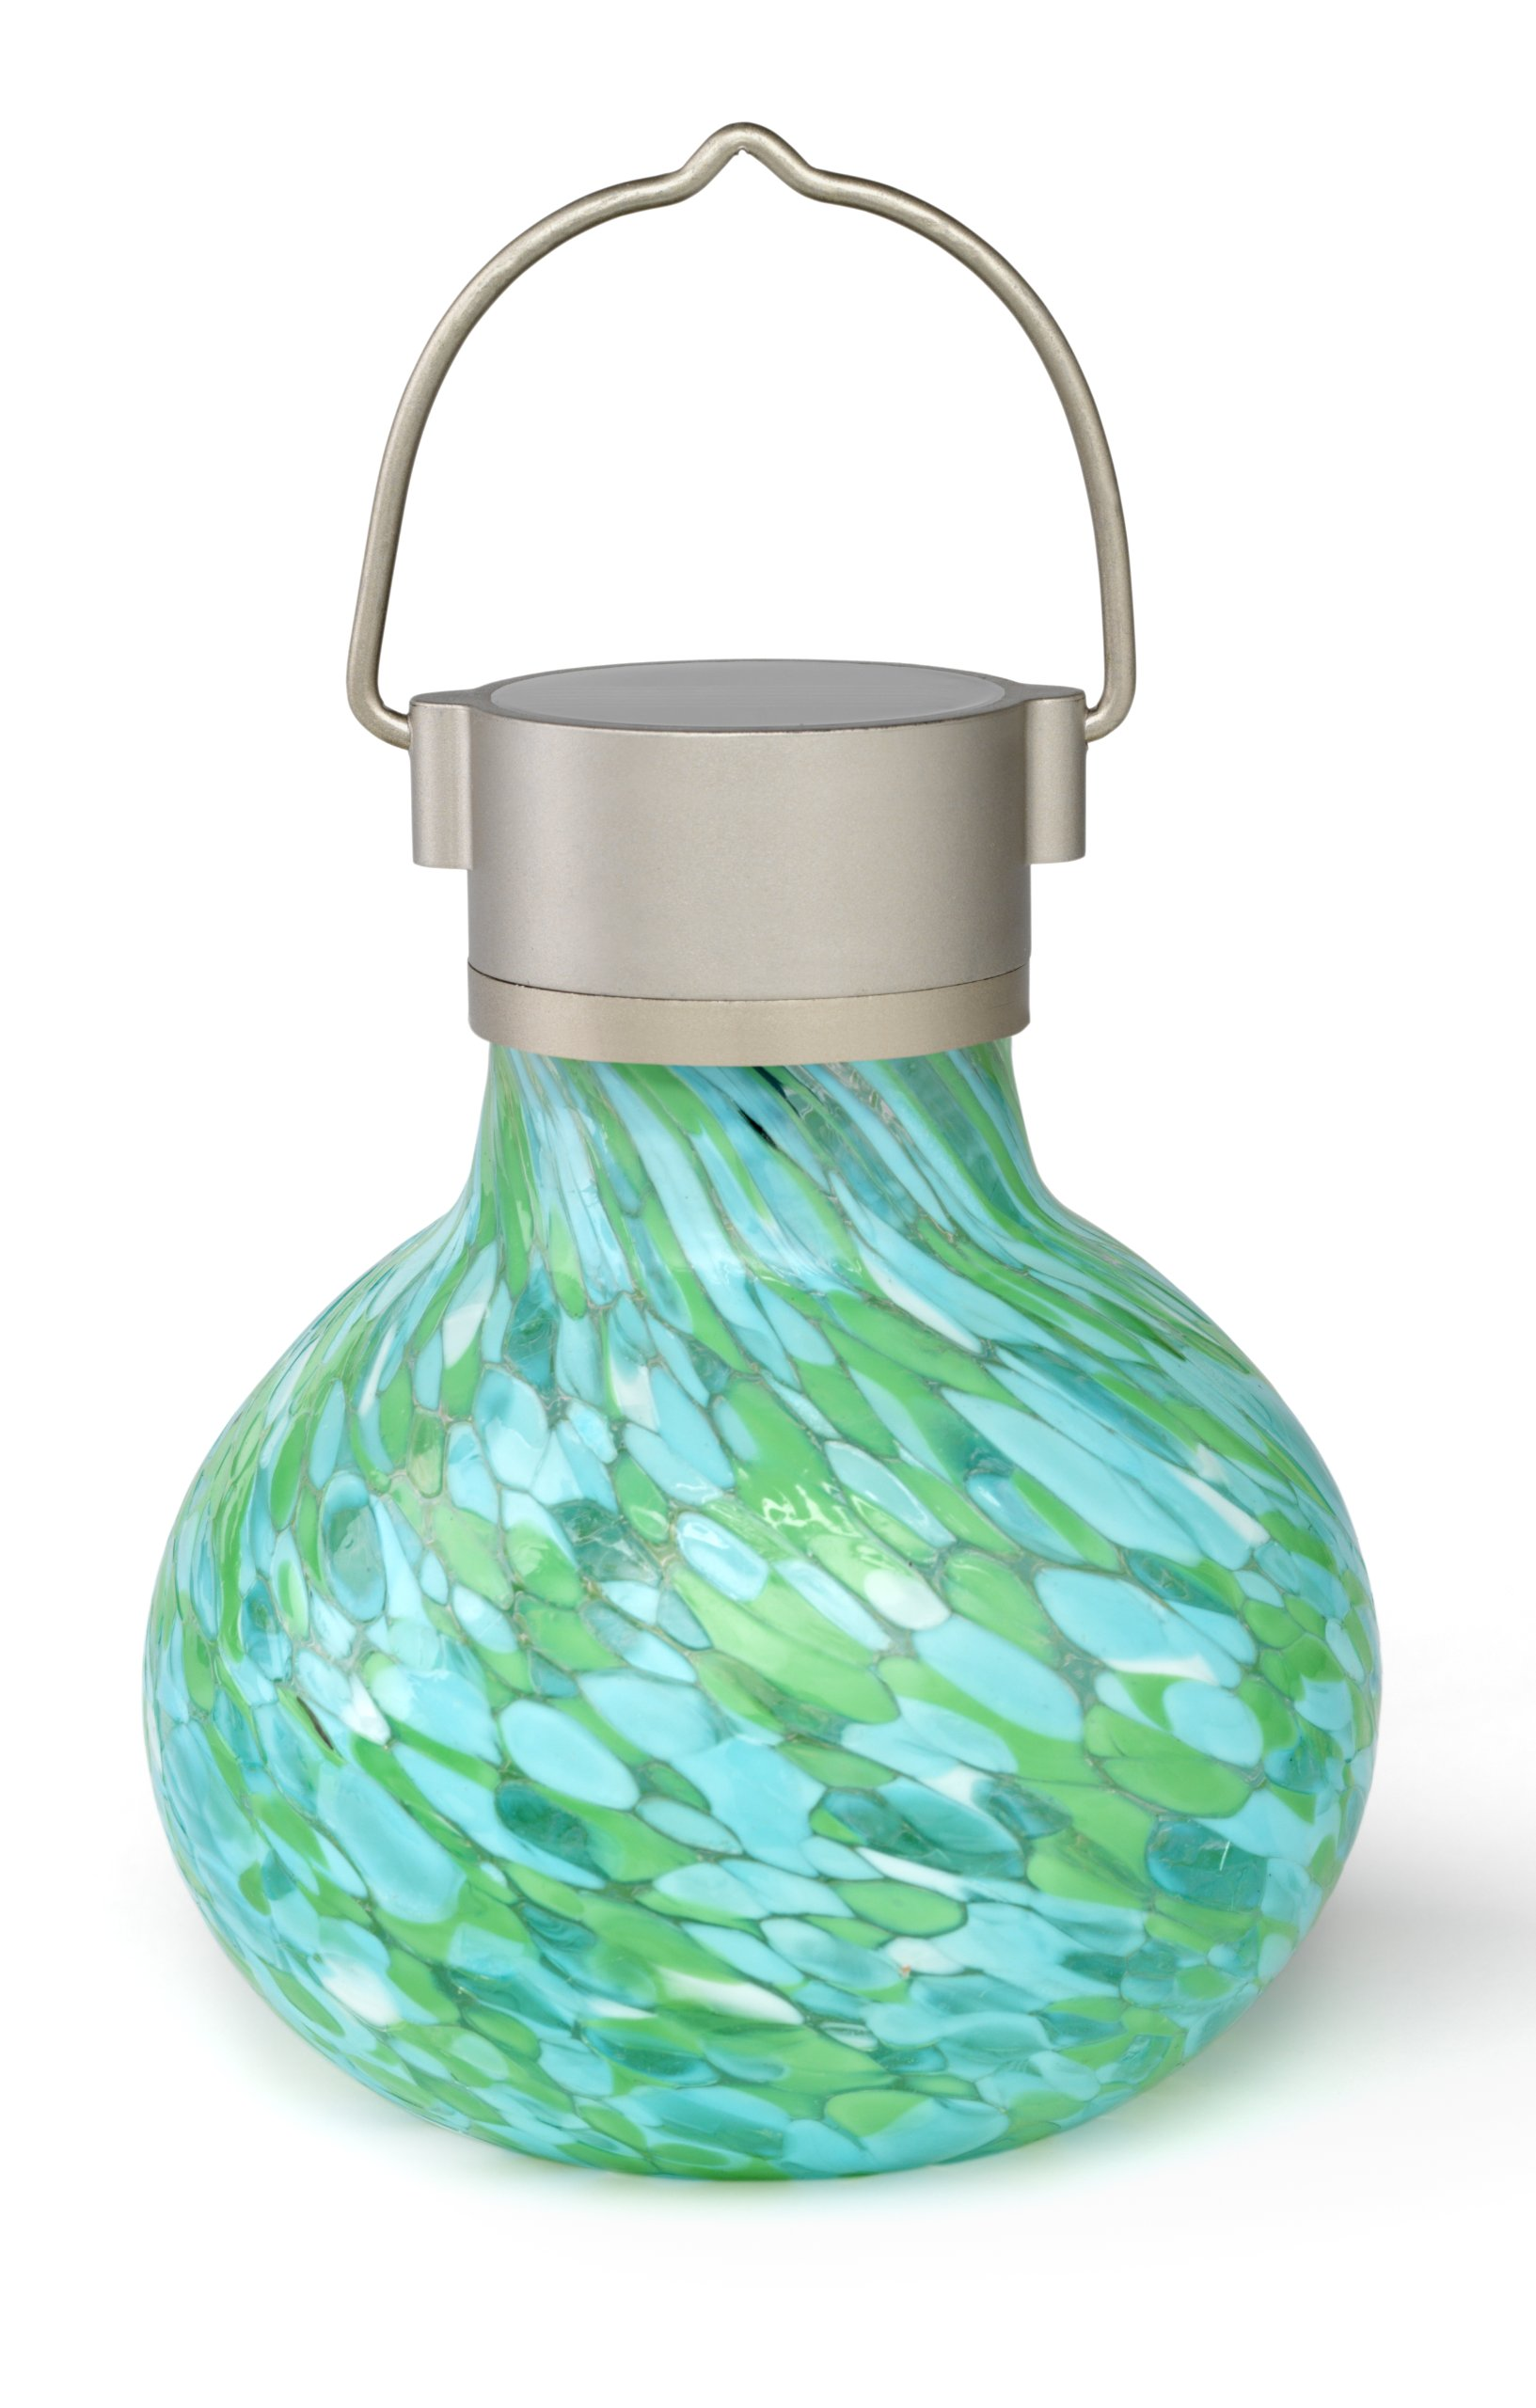 Allsop Home and Garden Solar Tea Lantern, Handblown Glass with Solar Panel and LED Light, Weather-Resistant for Outdoor Deck, Patio, Garden, Wedding, Mint, 1-Count